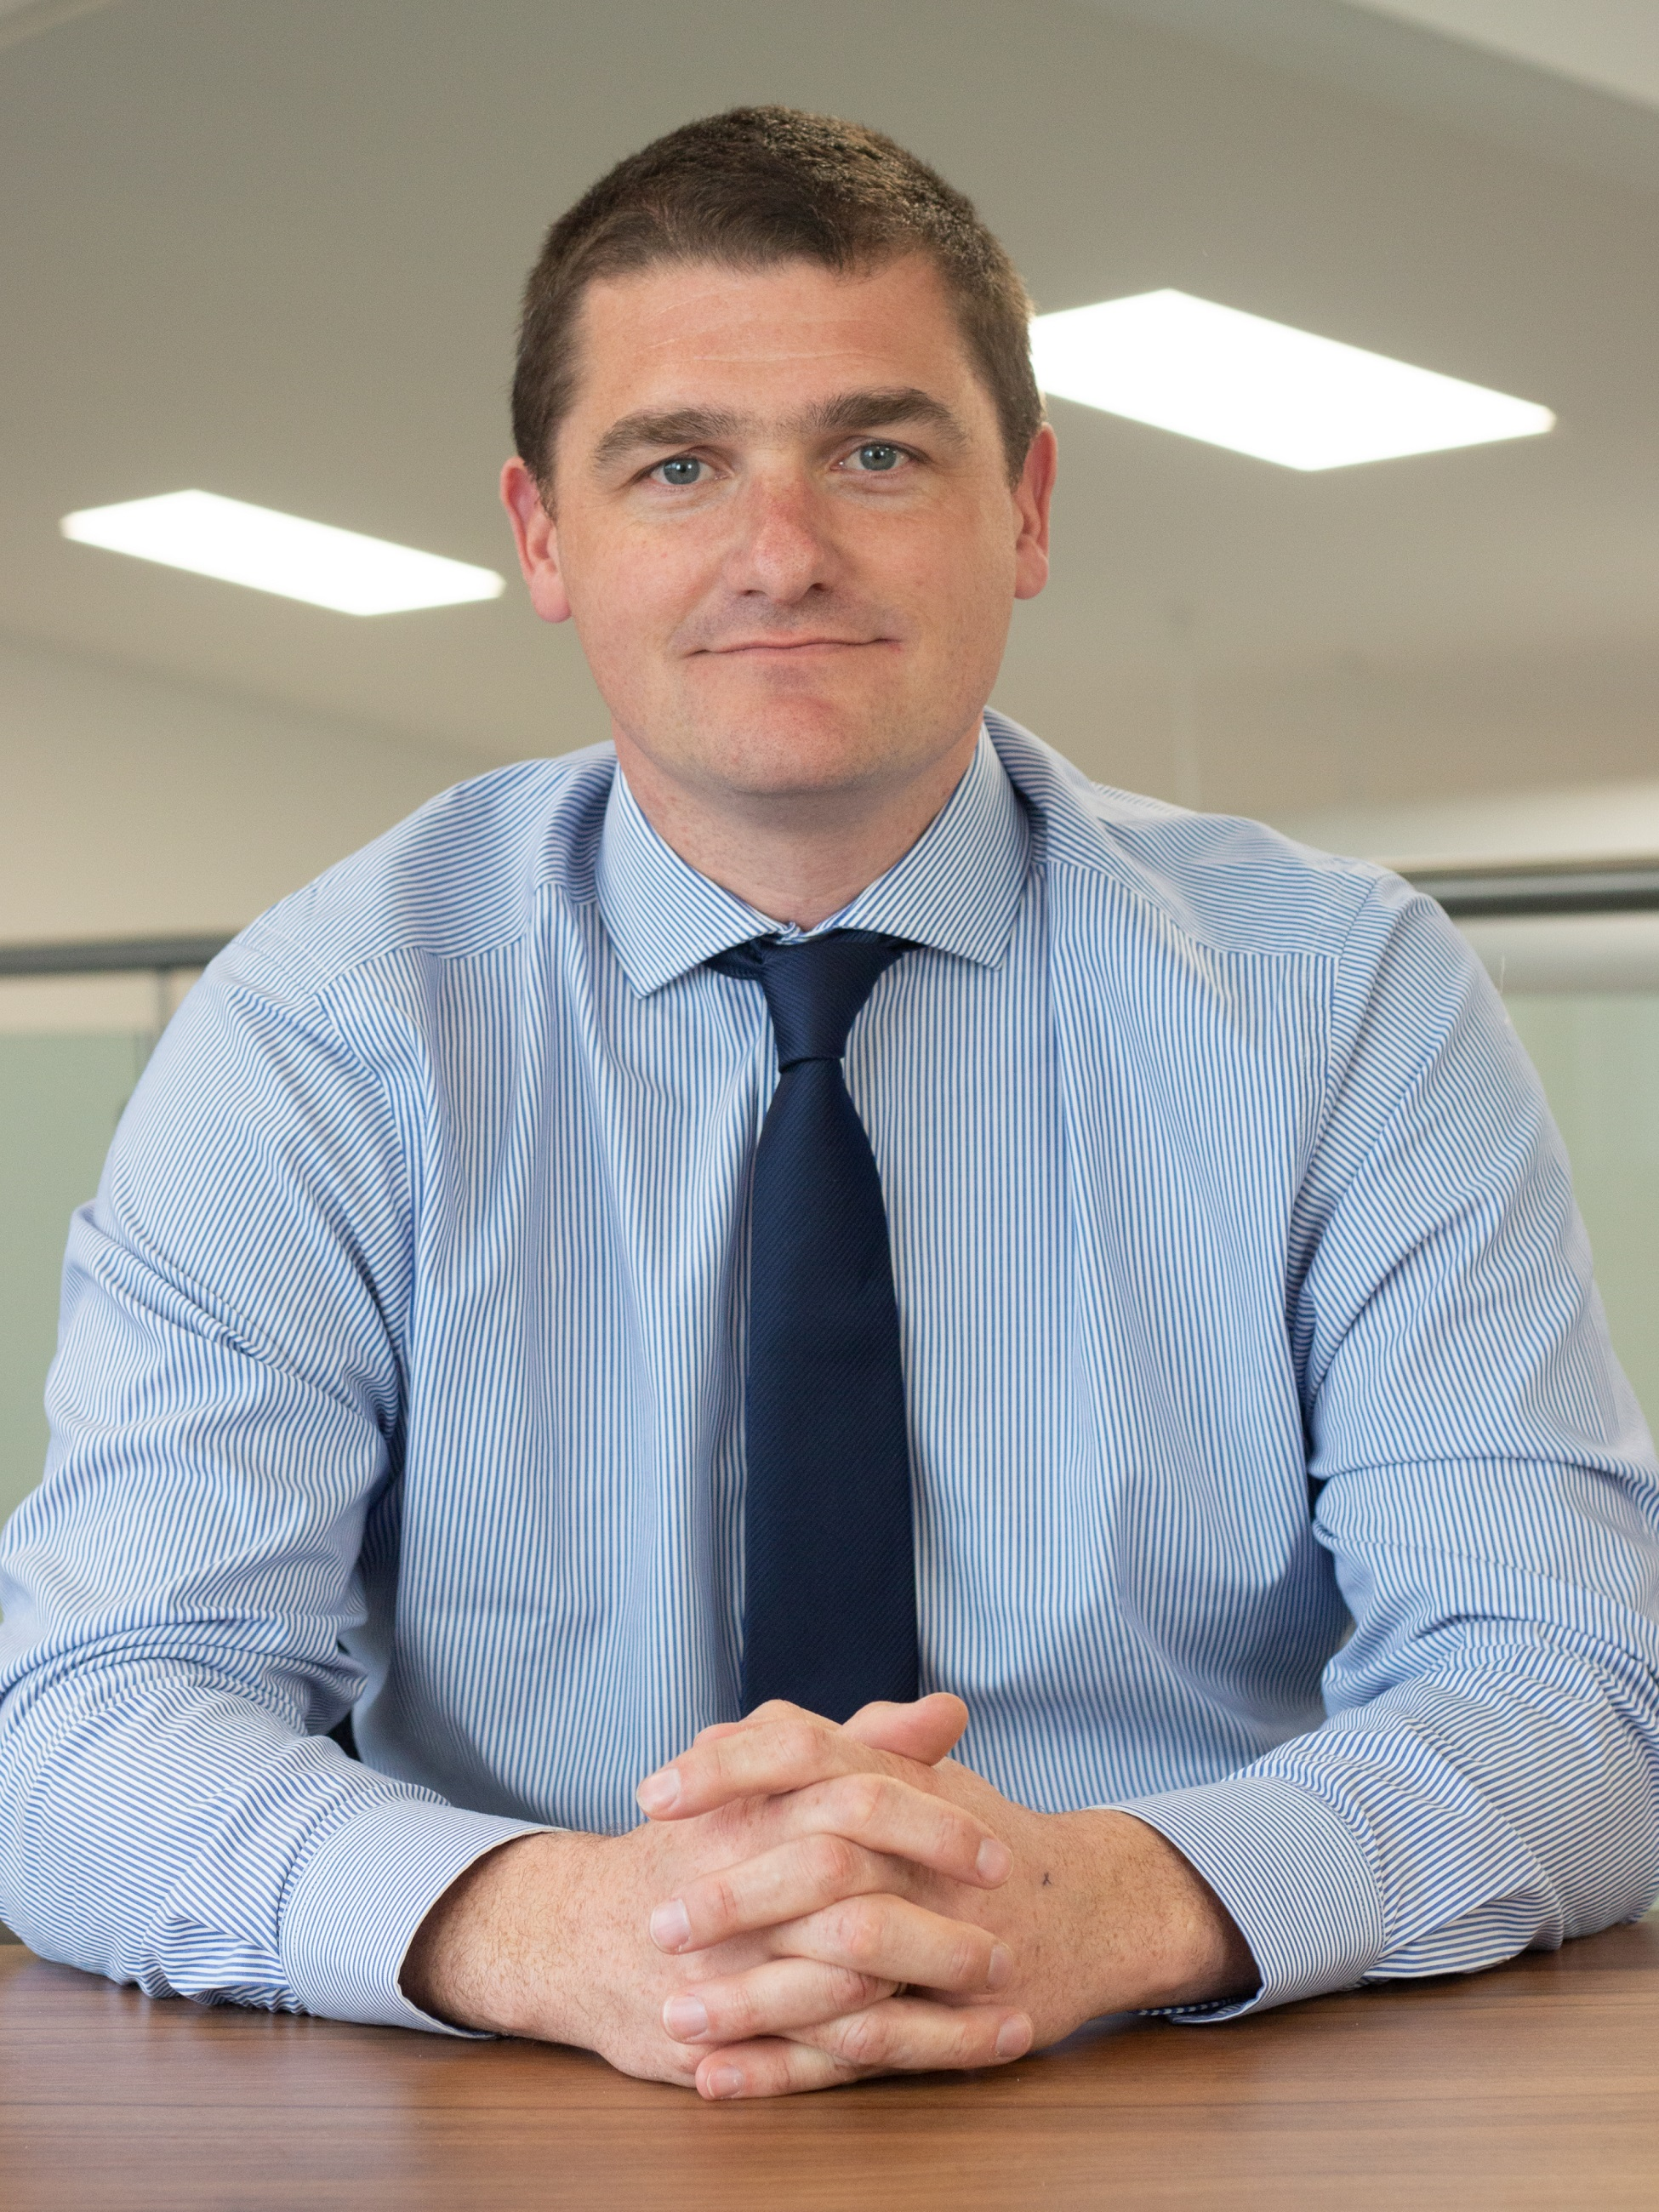 A leading property consultancy has won a five-year contract to provide property and surveying services to Southern Water.